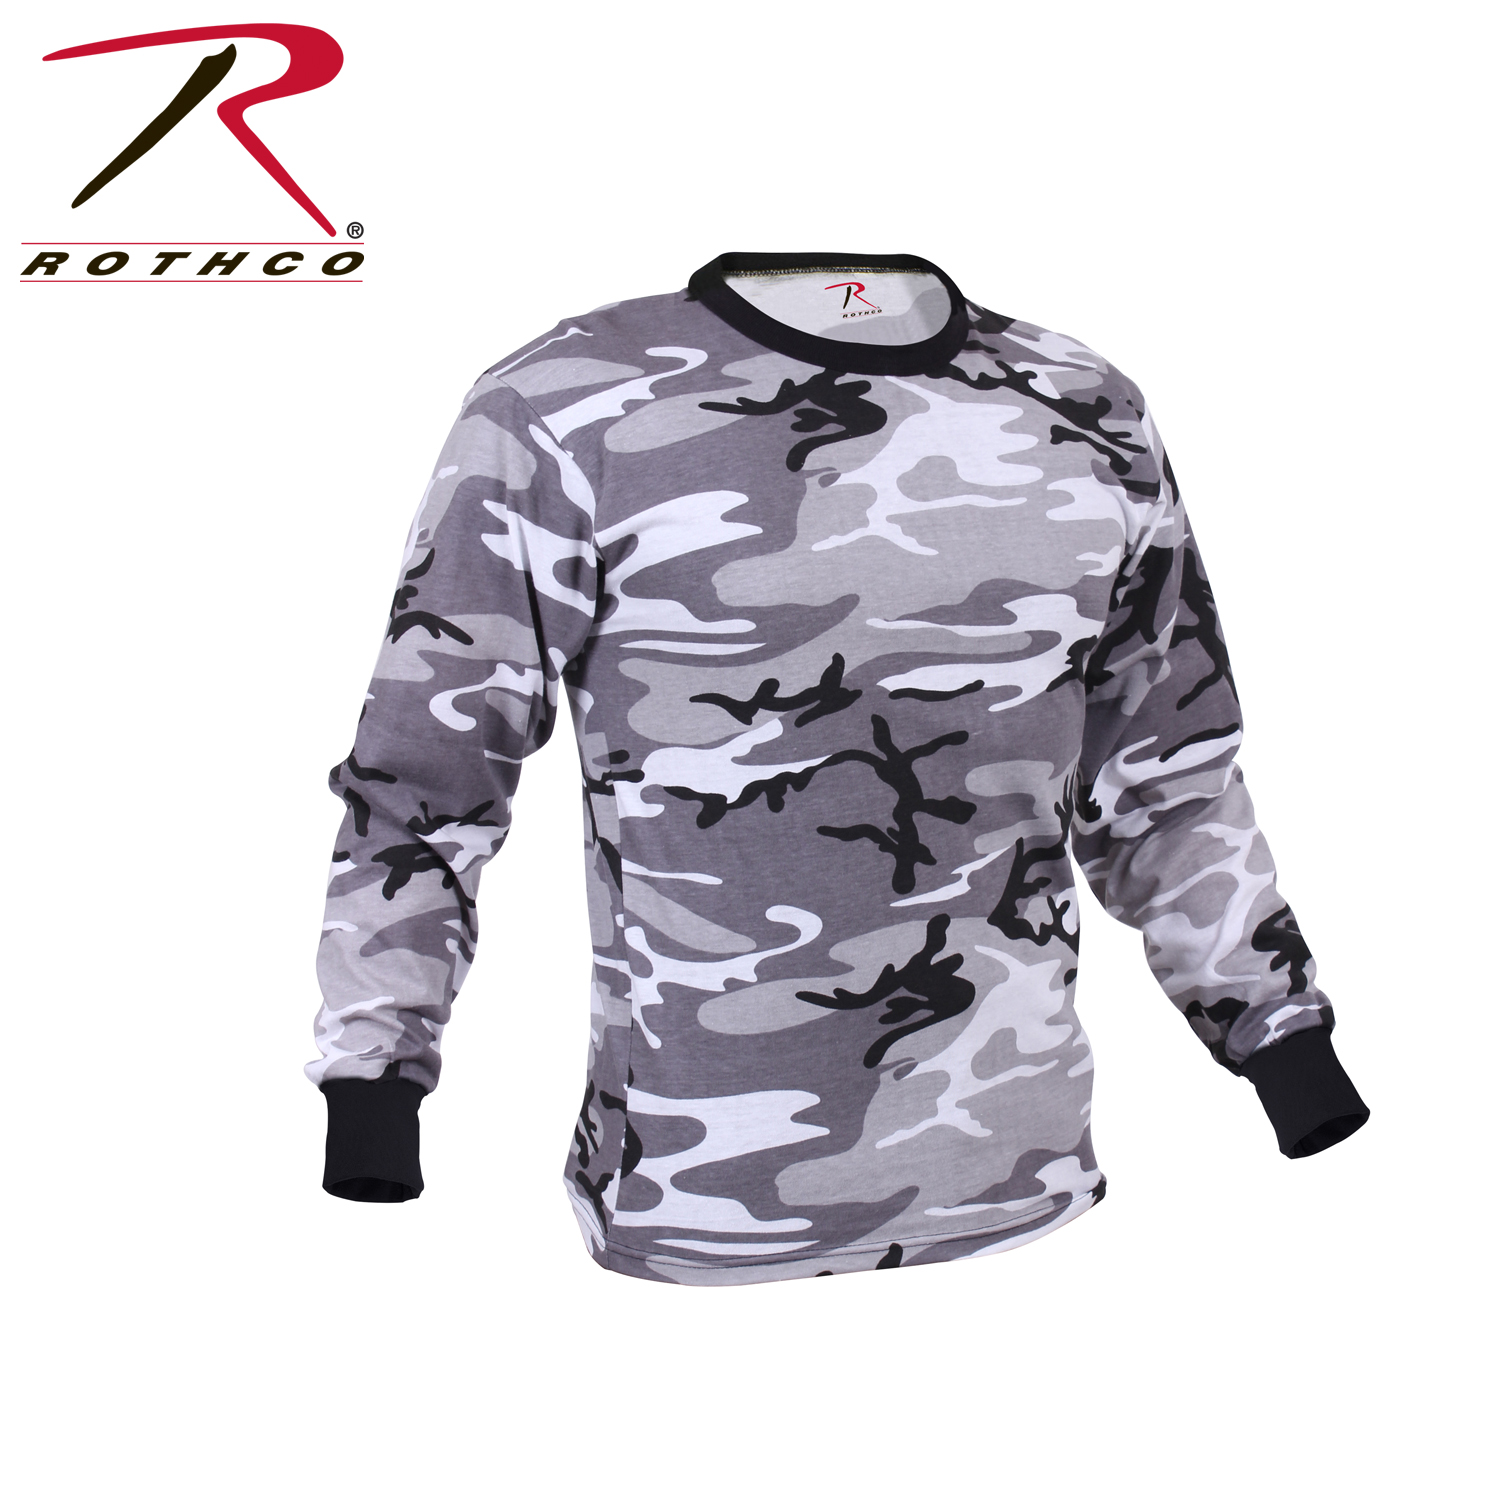 26c7f3282dc0c1 Rothco Long Sleeve Colored Camo T-Shirt